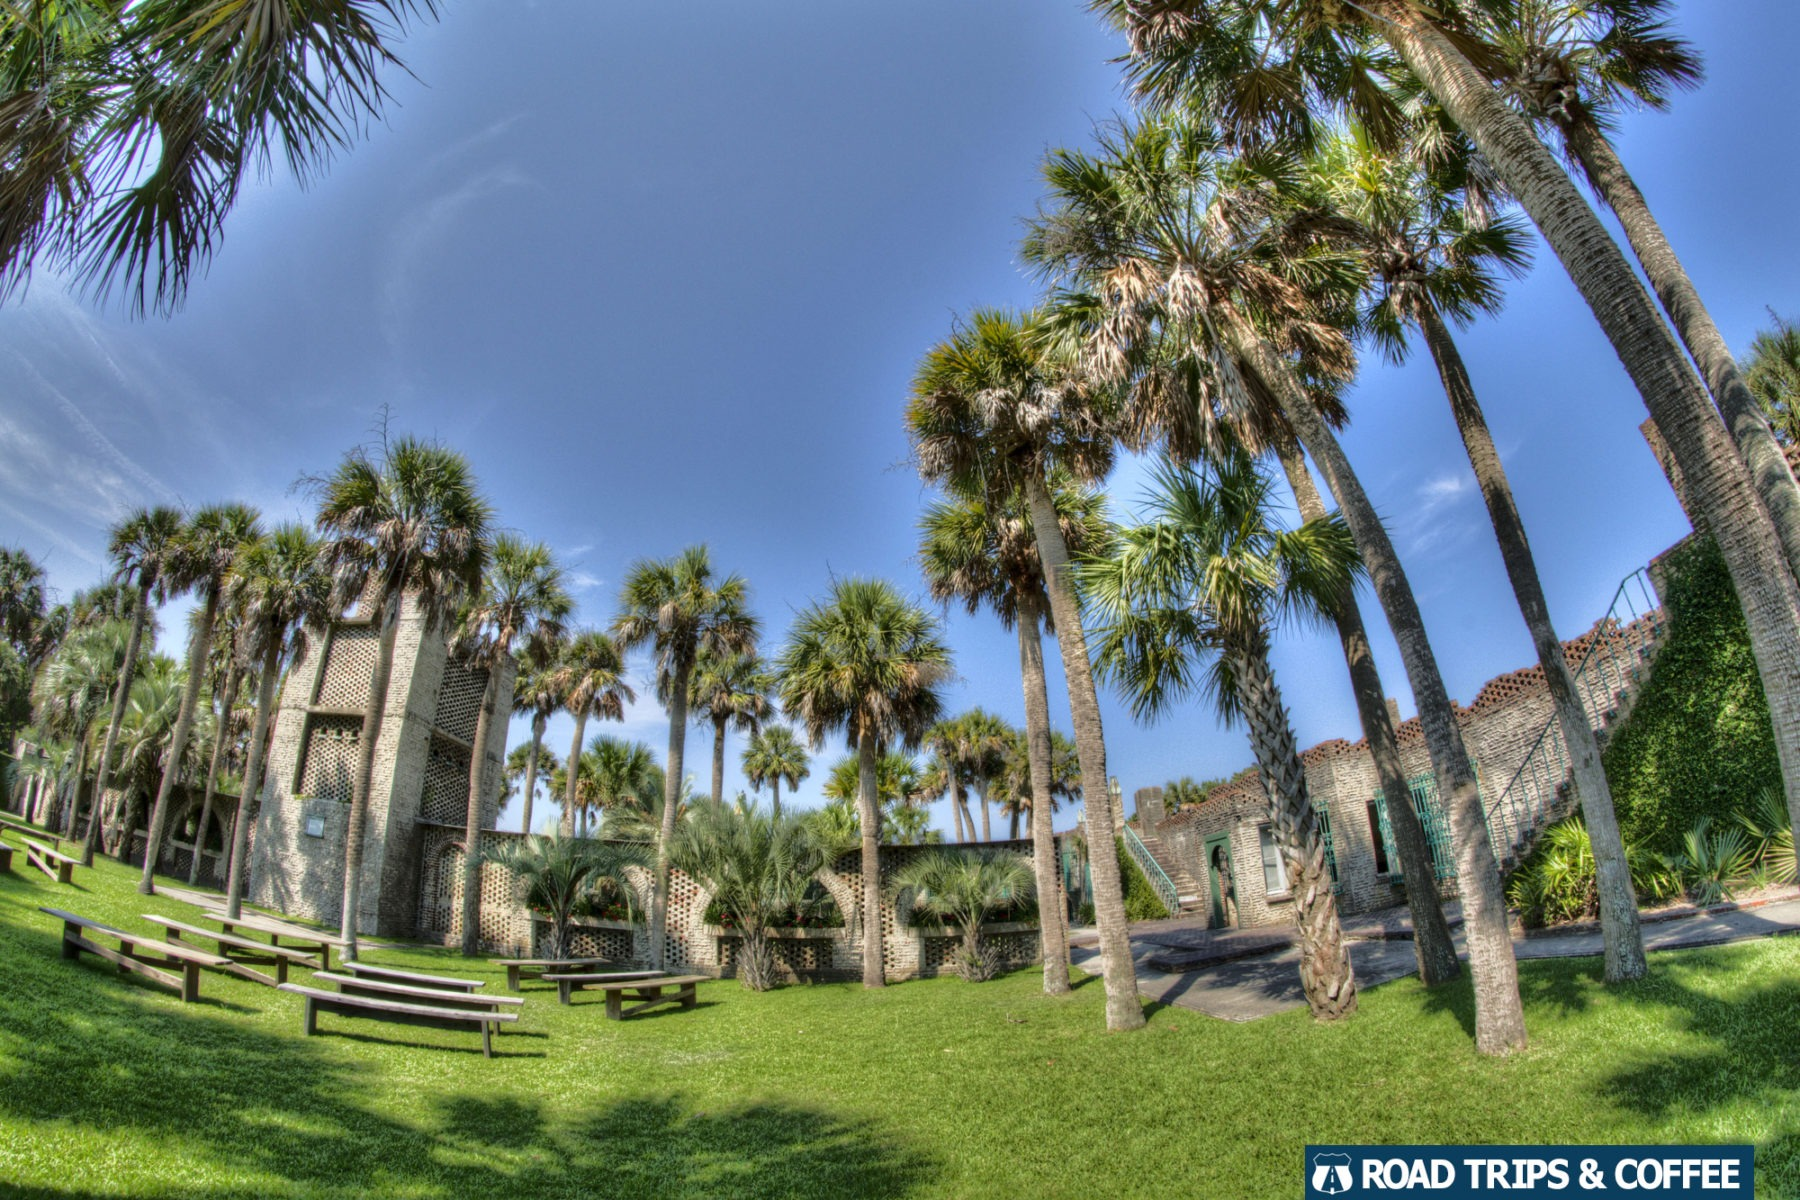 Inner courtyard with towering palm trees at Atalaya Castle in Huntington Beach State Park in Murrells Inlet, South Carolina